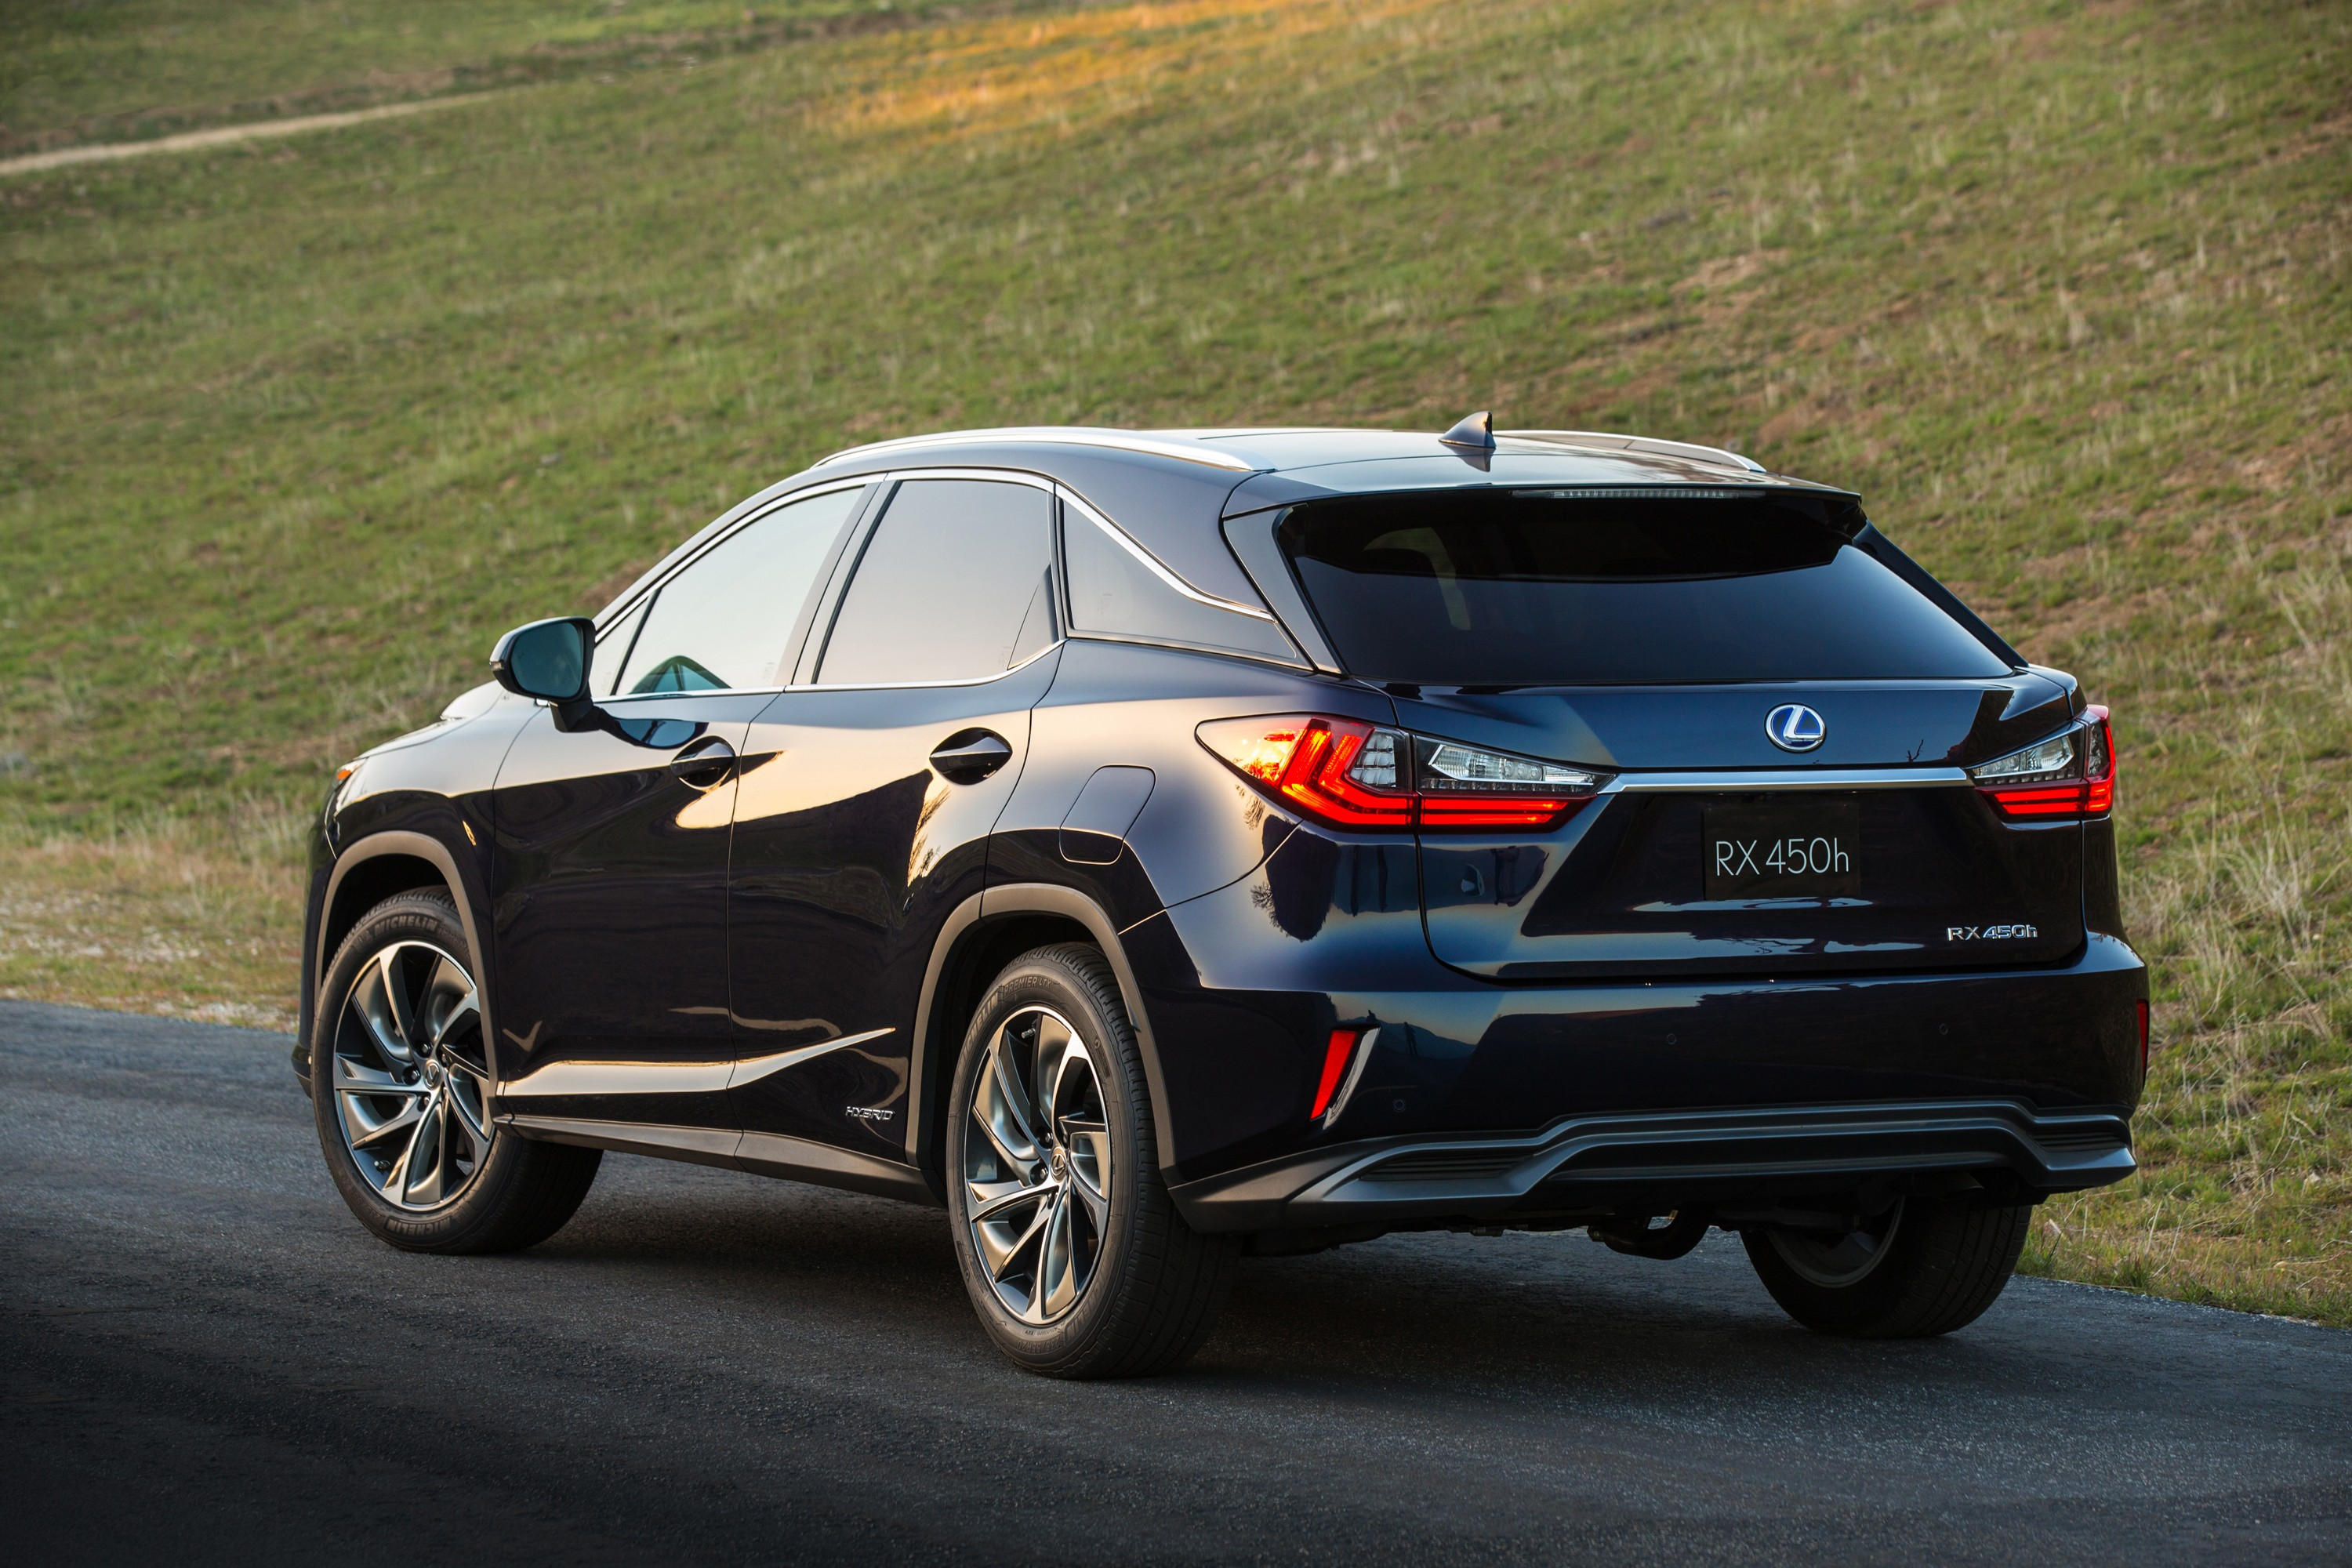 2016 Lexus RX 350 F Sport and RX 450h Show Up in NYC autoevolution